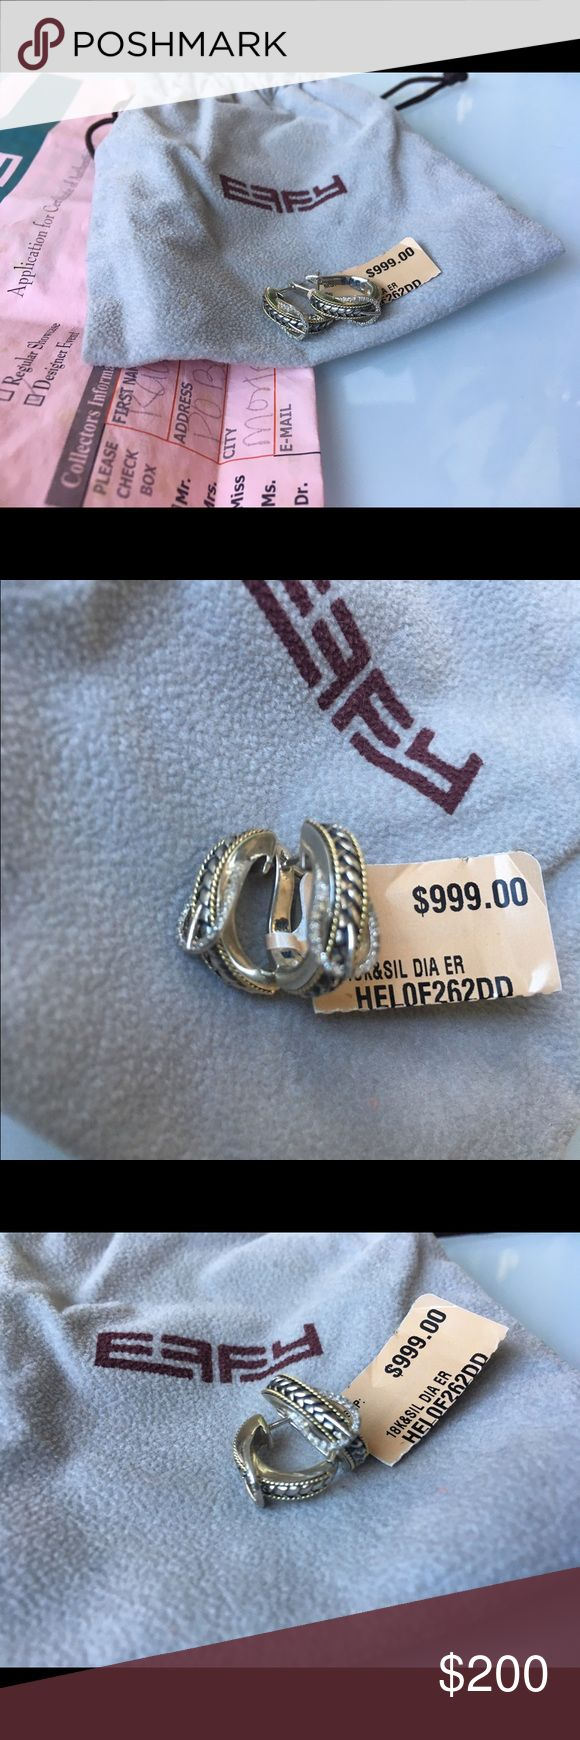 Effy 18k gold, sterling silver, & diamond earrings Brand new with tags! Authentic Effy 18k yellow gold, sterling silver, & diamond buckle j-hoop earrings, never worn with price tag still attached & showing value at $999. Comes with original packaging and Effy duster bag. Effy Jewelry Earrings